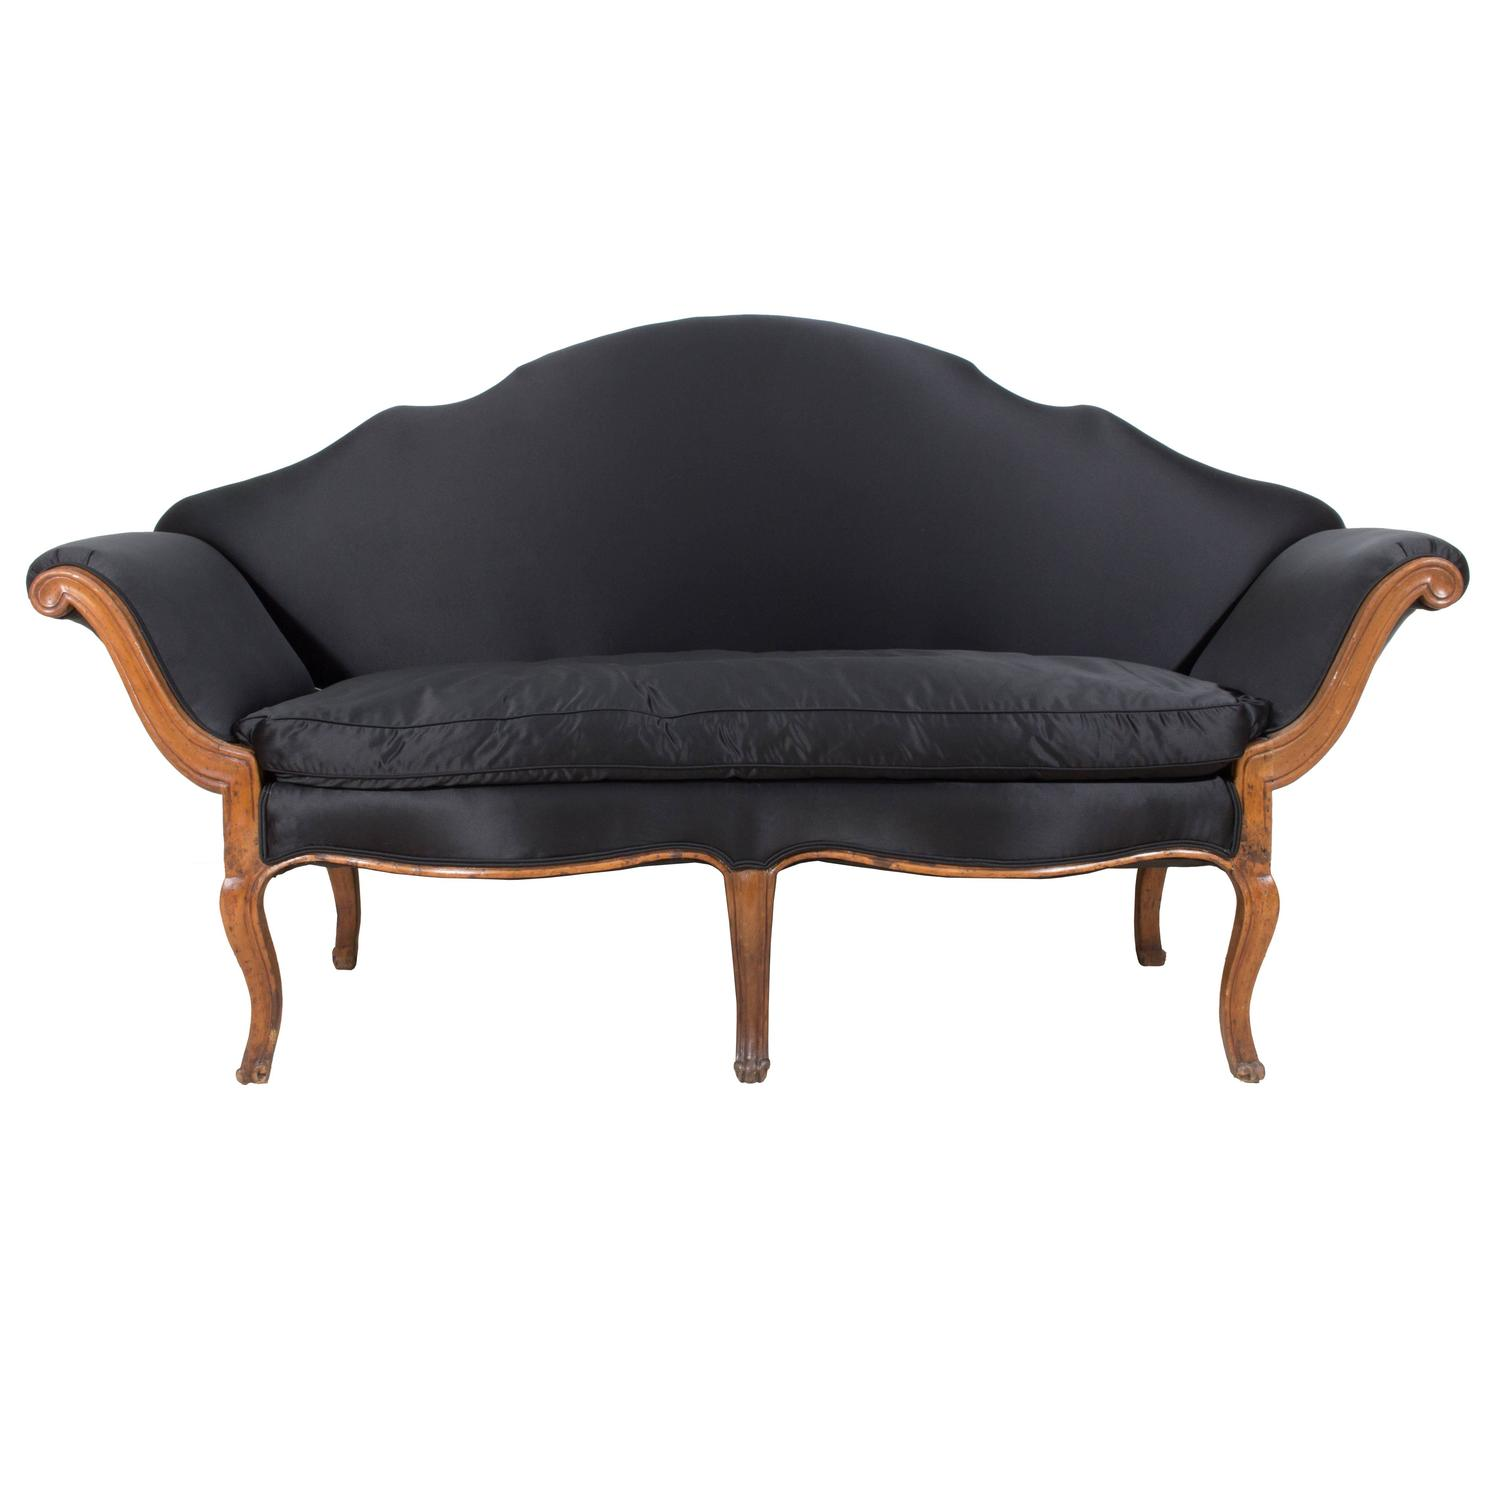 19th century italian canap sofa for sale at 1stdibs for Canape for sale